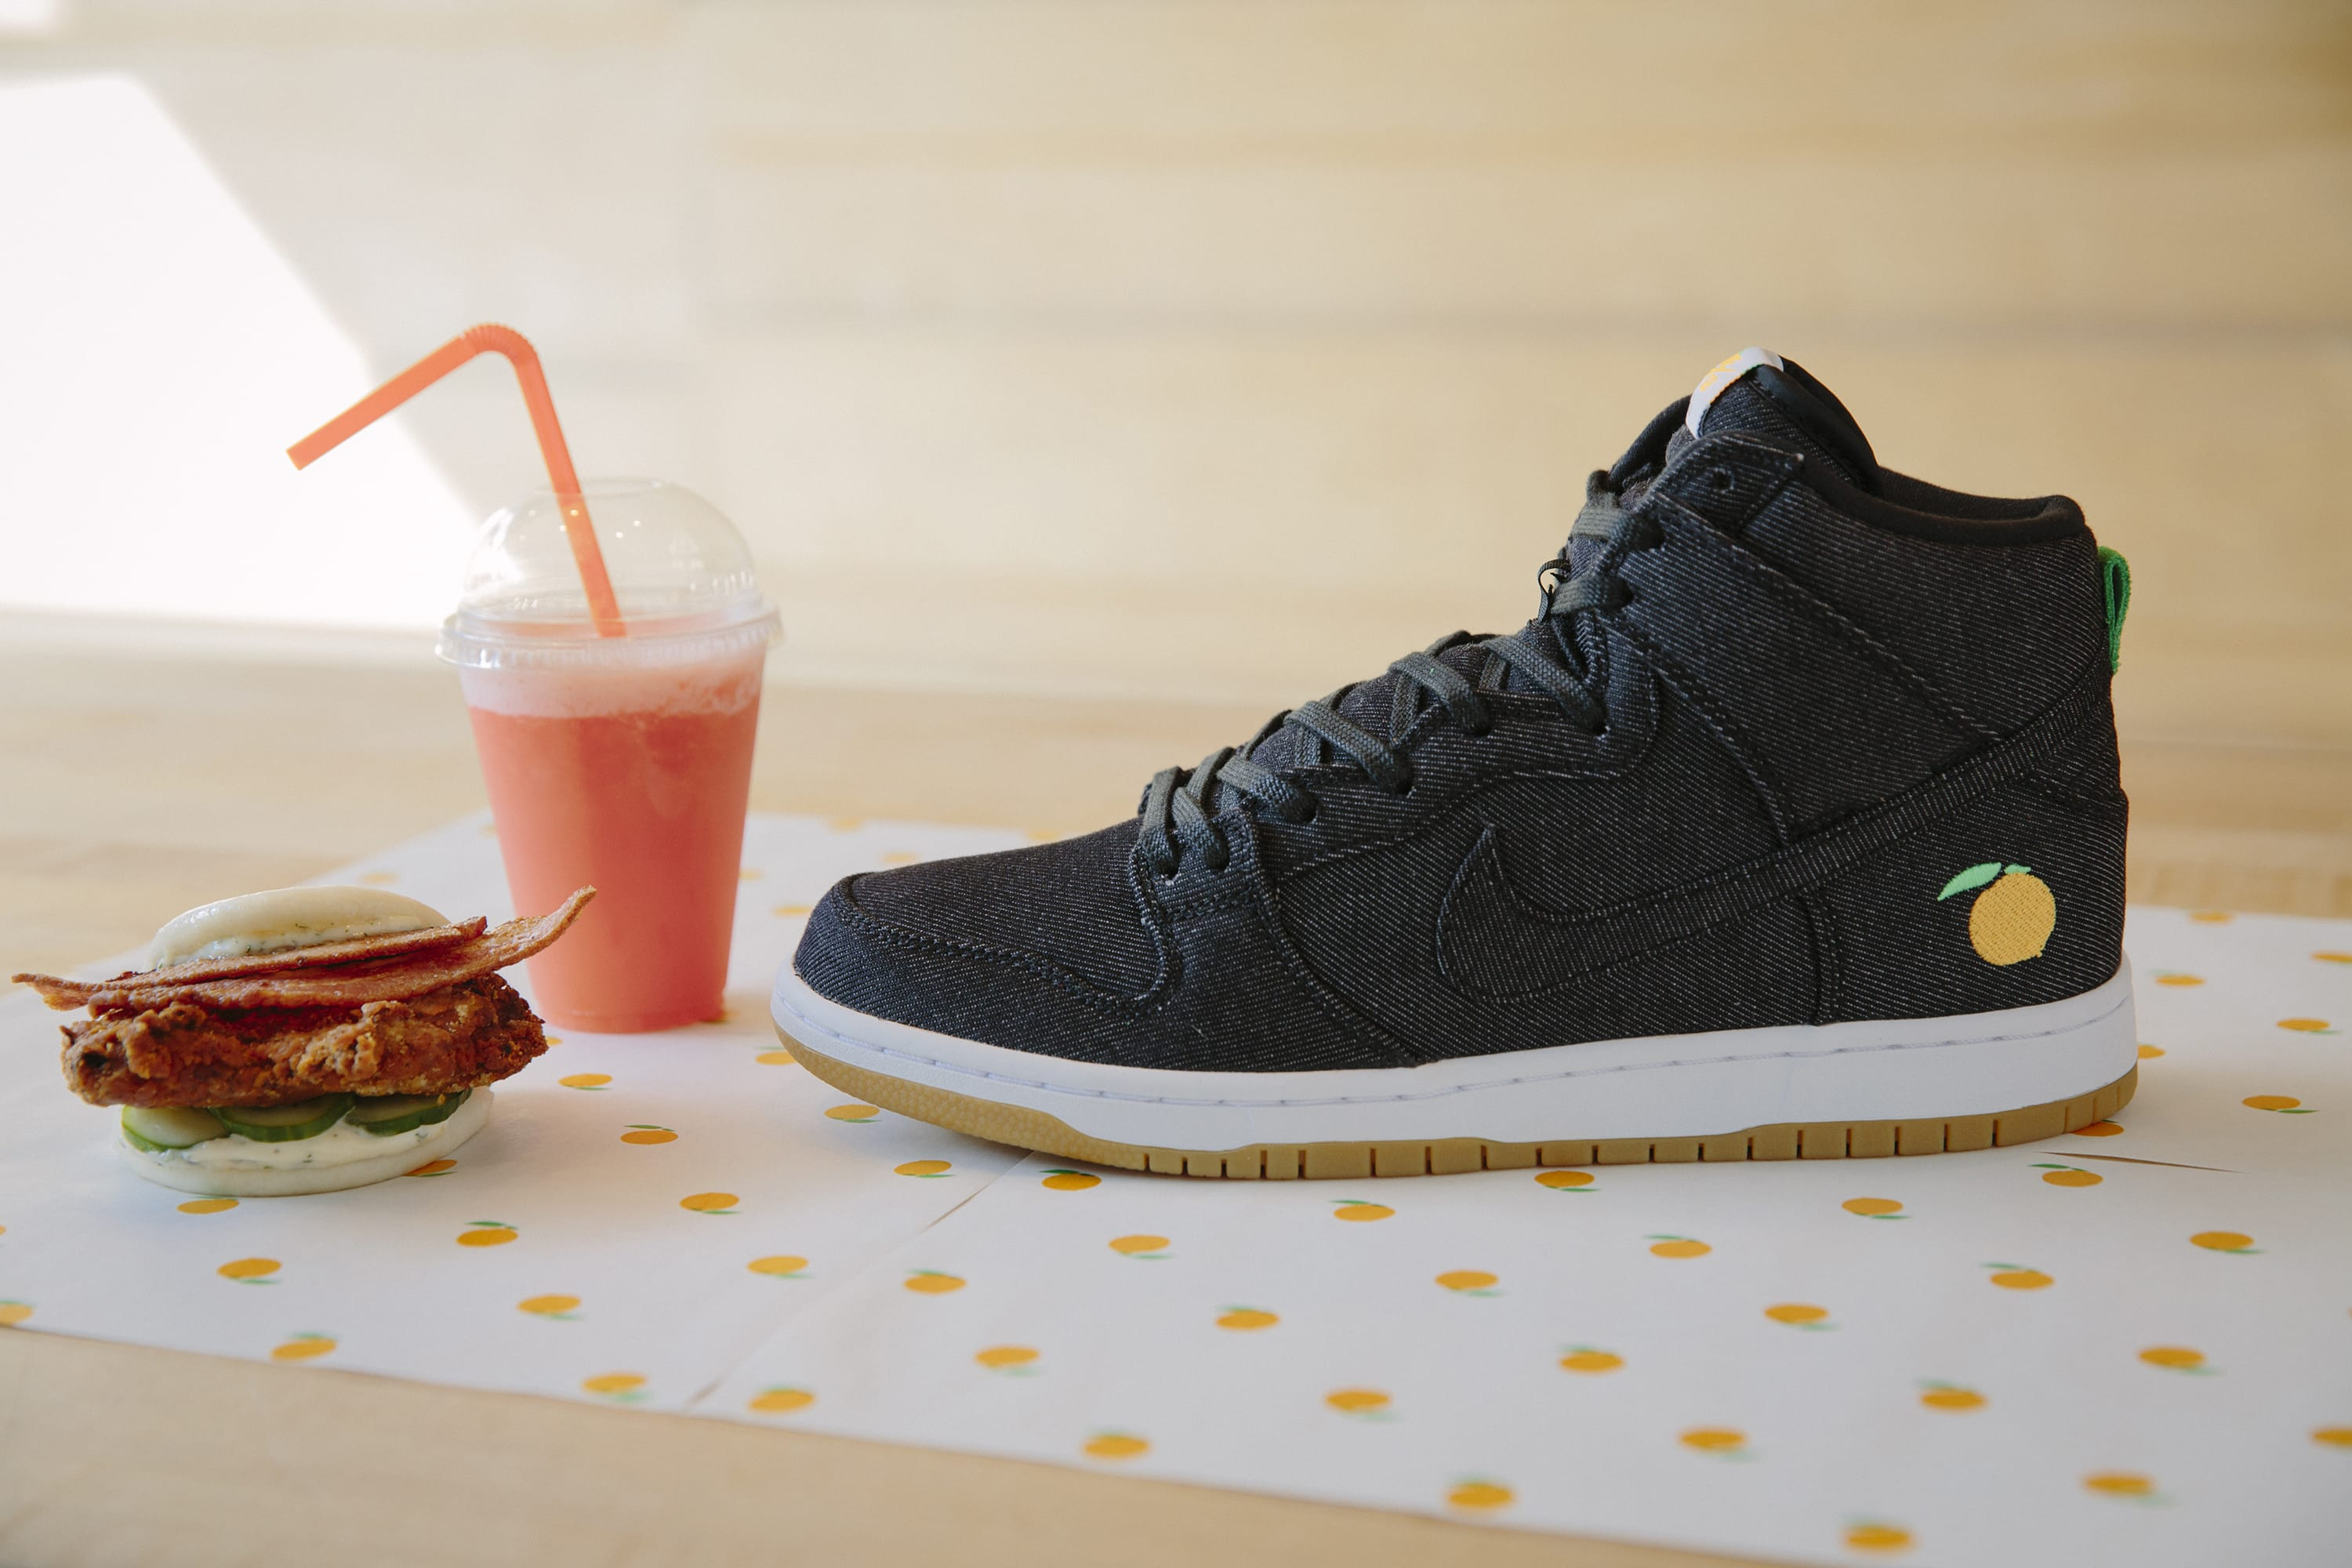 David Chang x Nike SB Dunk High Pro